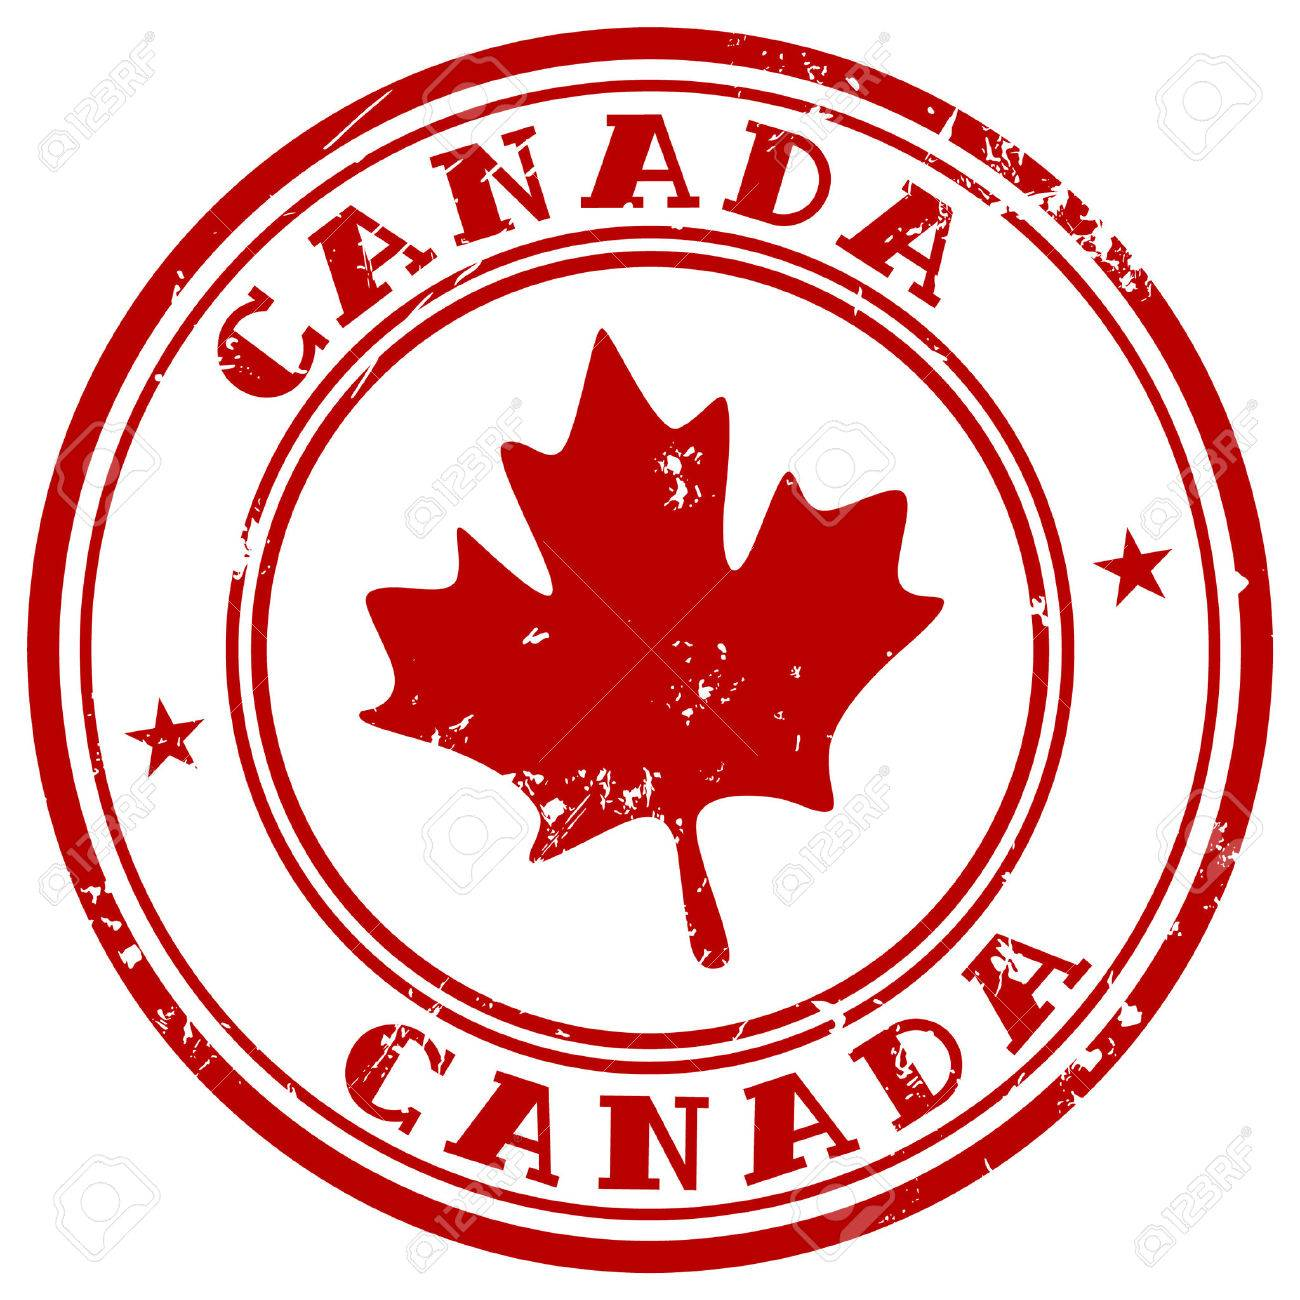 stamp with name of Canada - 52359305